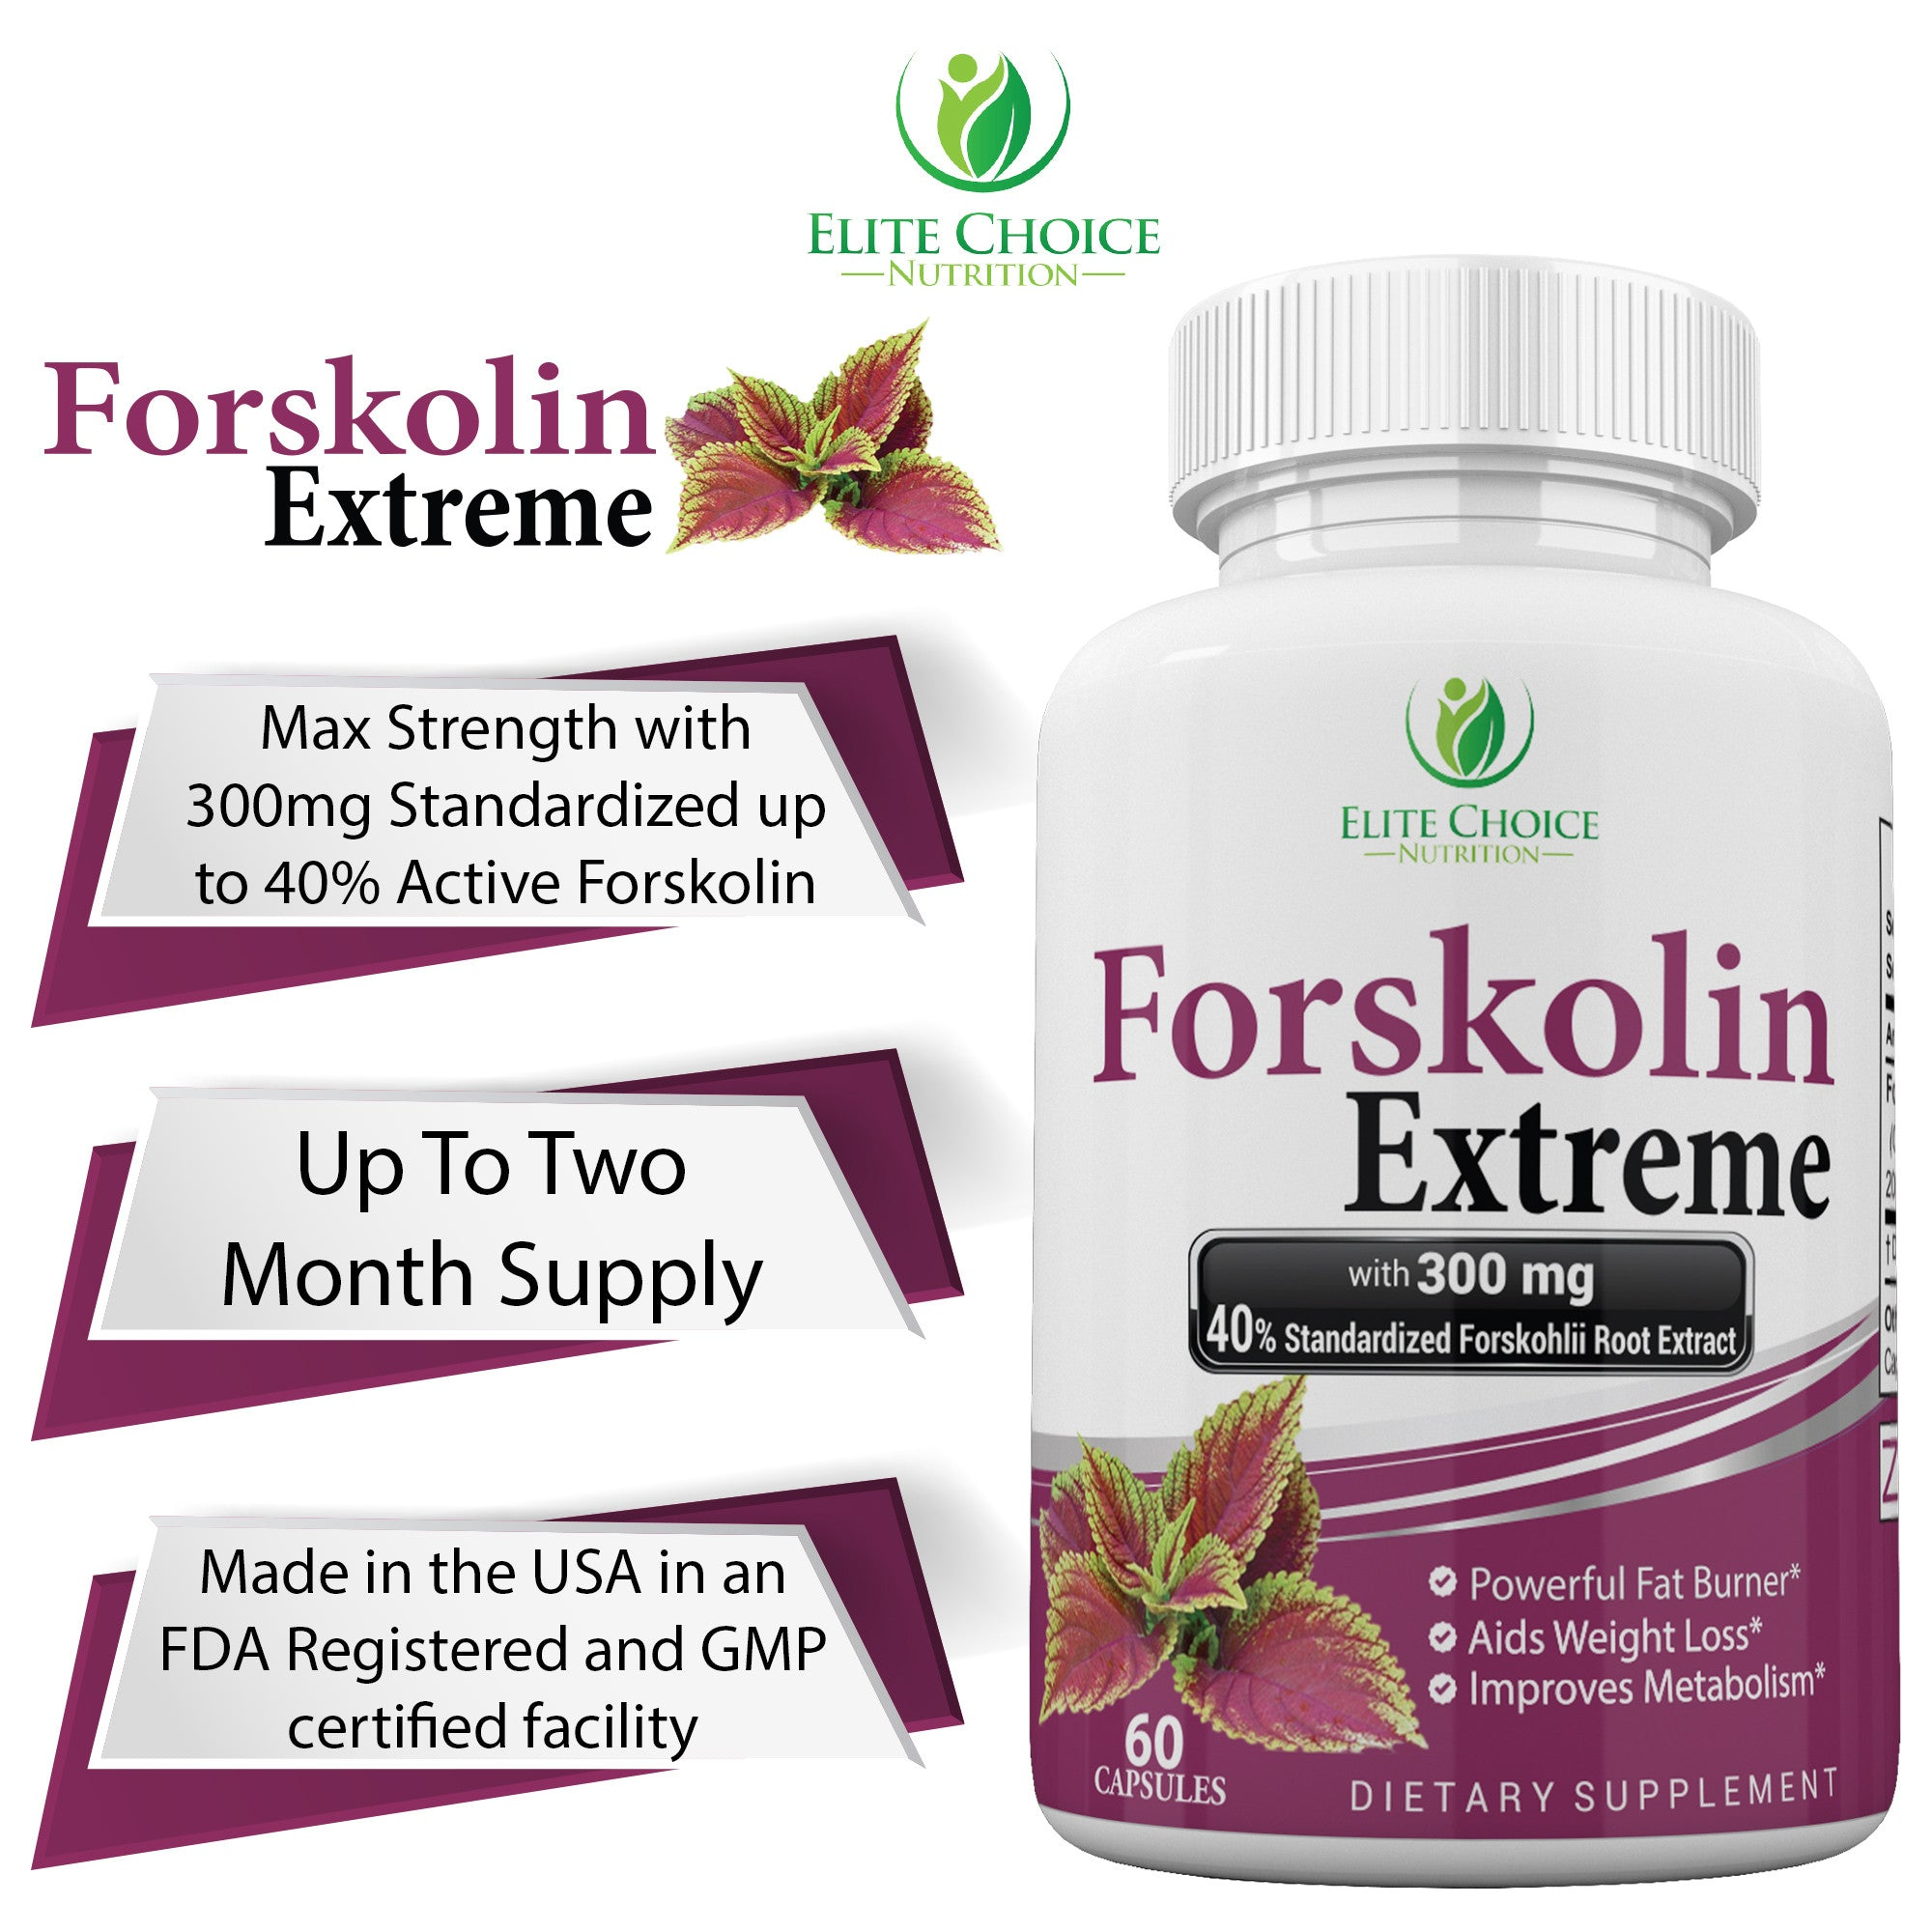 Forskolin Extreme 40 Standardized With 300mg Weight Loss Supplement